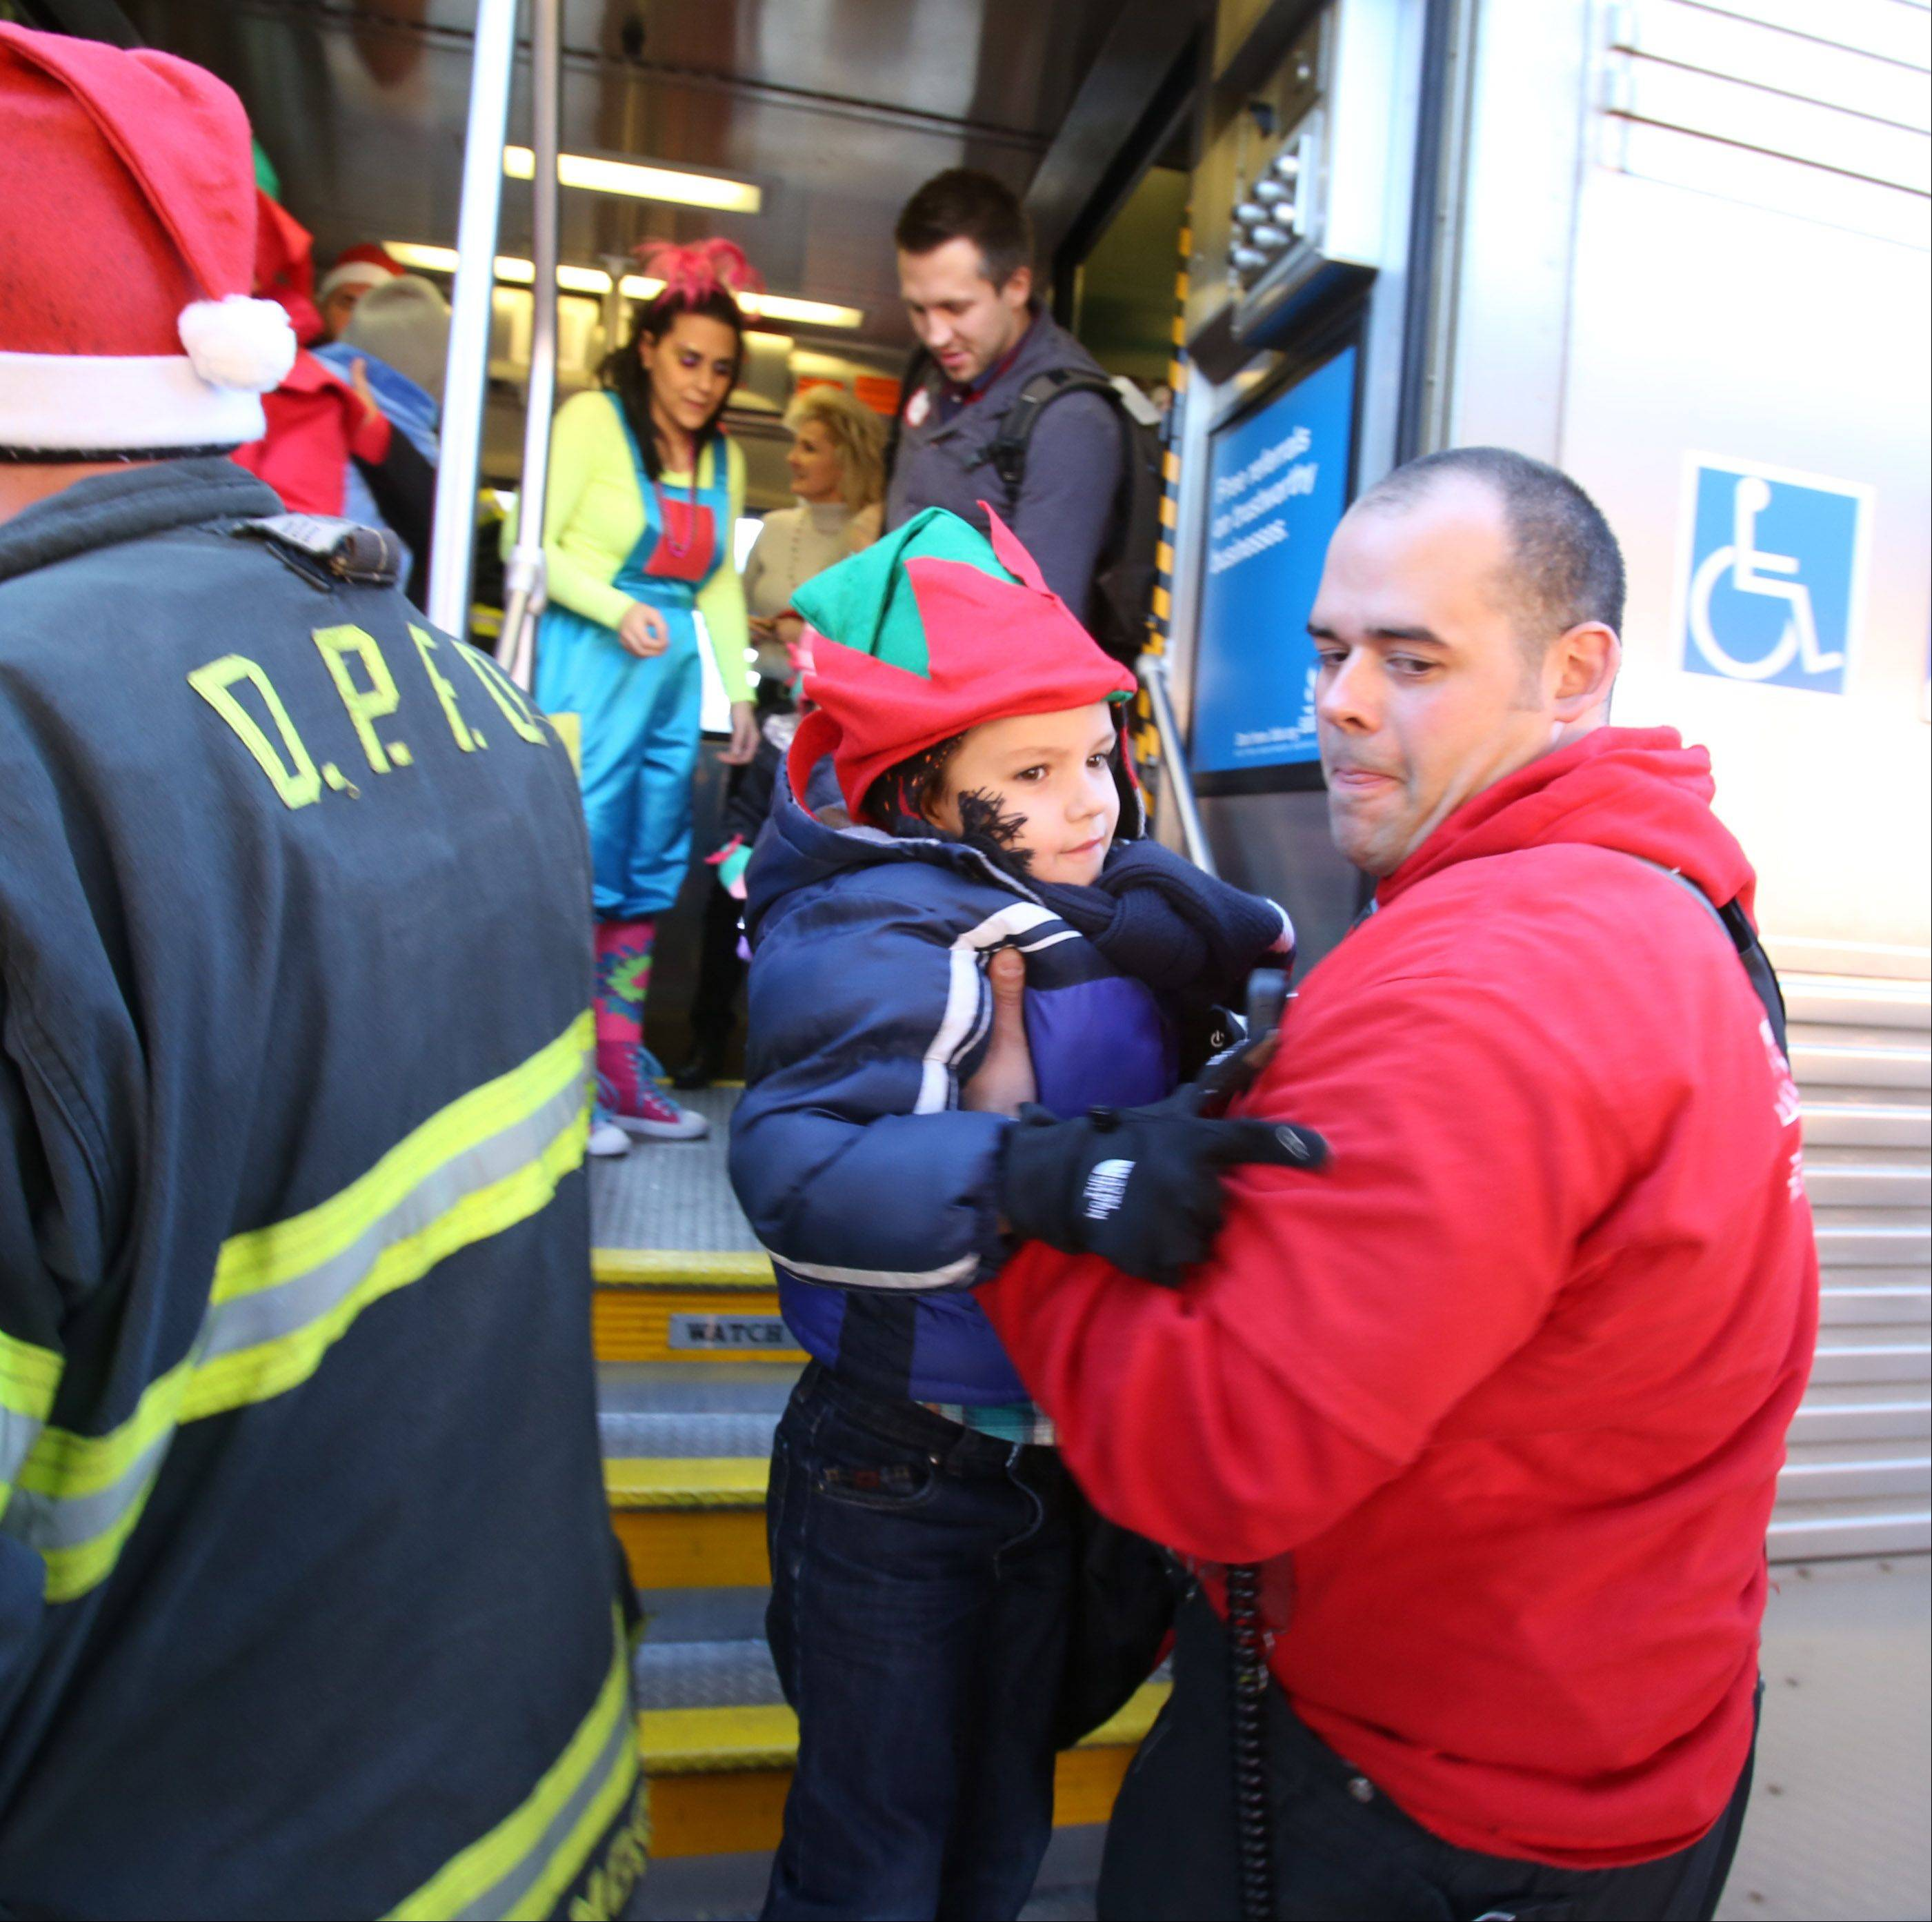 Ed Rodgers, firefighter with Des Plaines Fire Department, lifts Marek Szklane, 5, of Lombard off the train Saturday during Operation North Pole in Des Plaines.